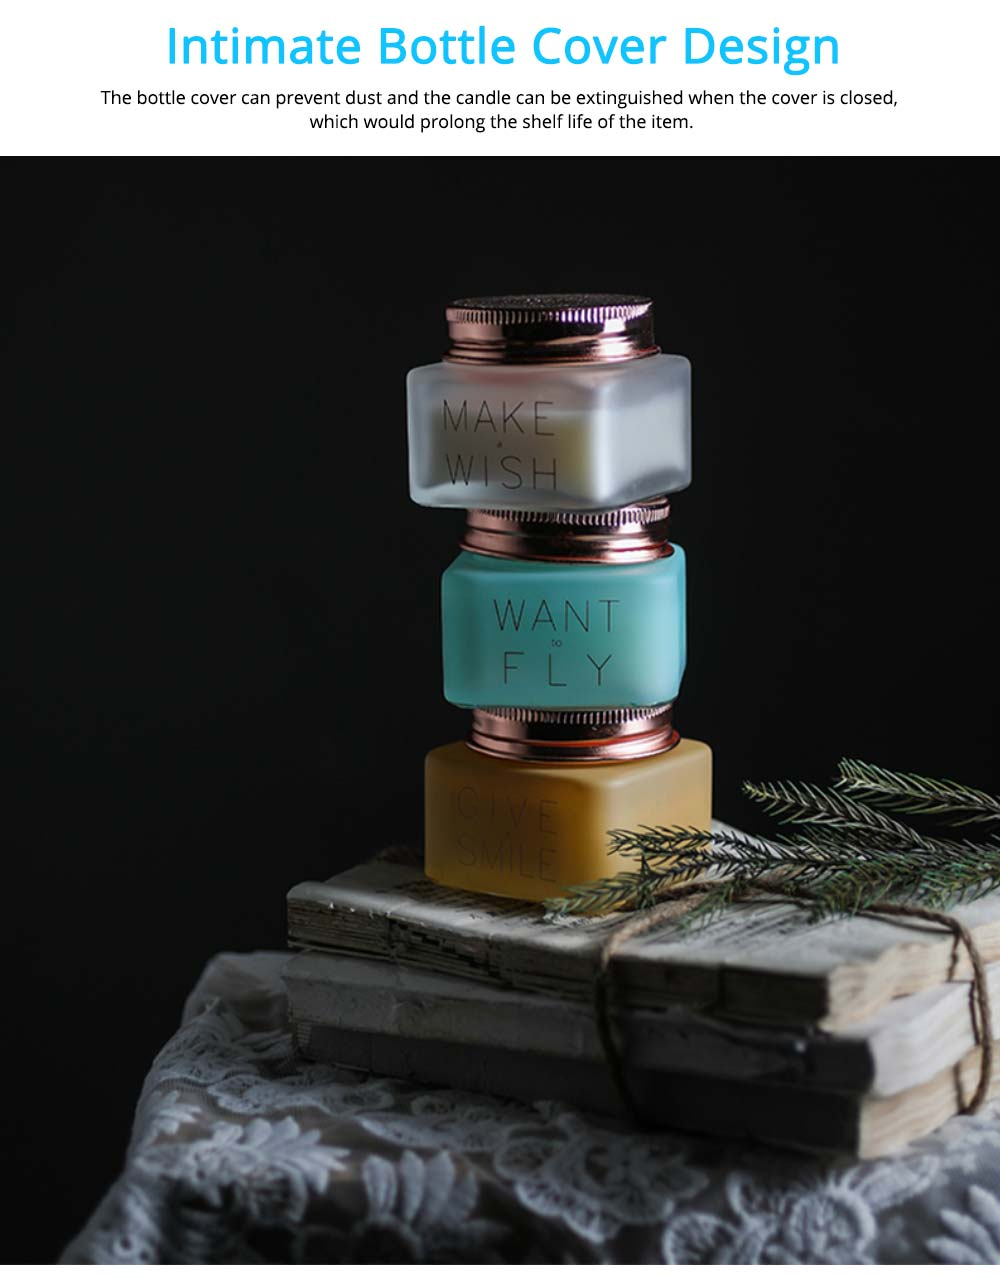 Natural Essential Oil Scented Candles with Beautiful Cosmetic Jar, Scented Candles Gift Box for Ladies Birthday Present 5